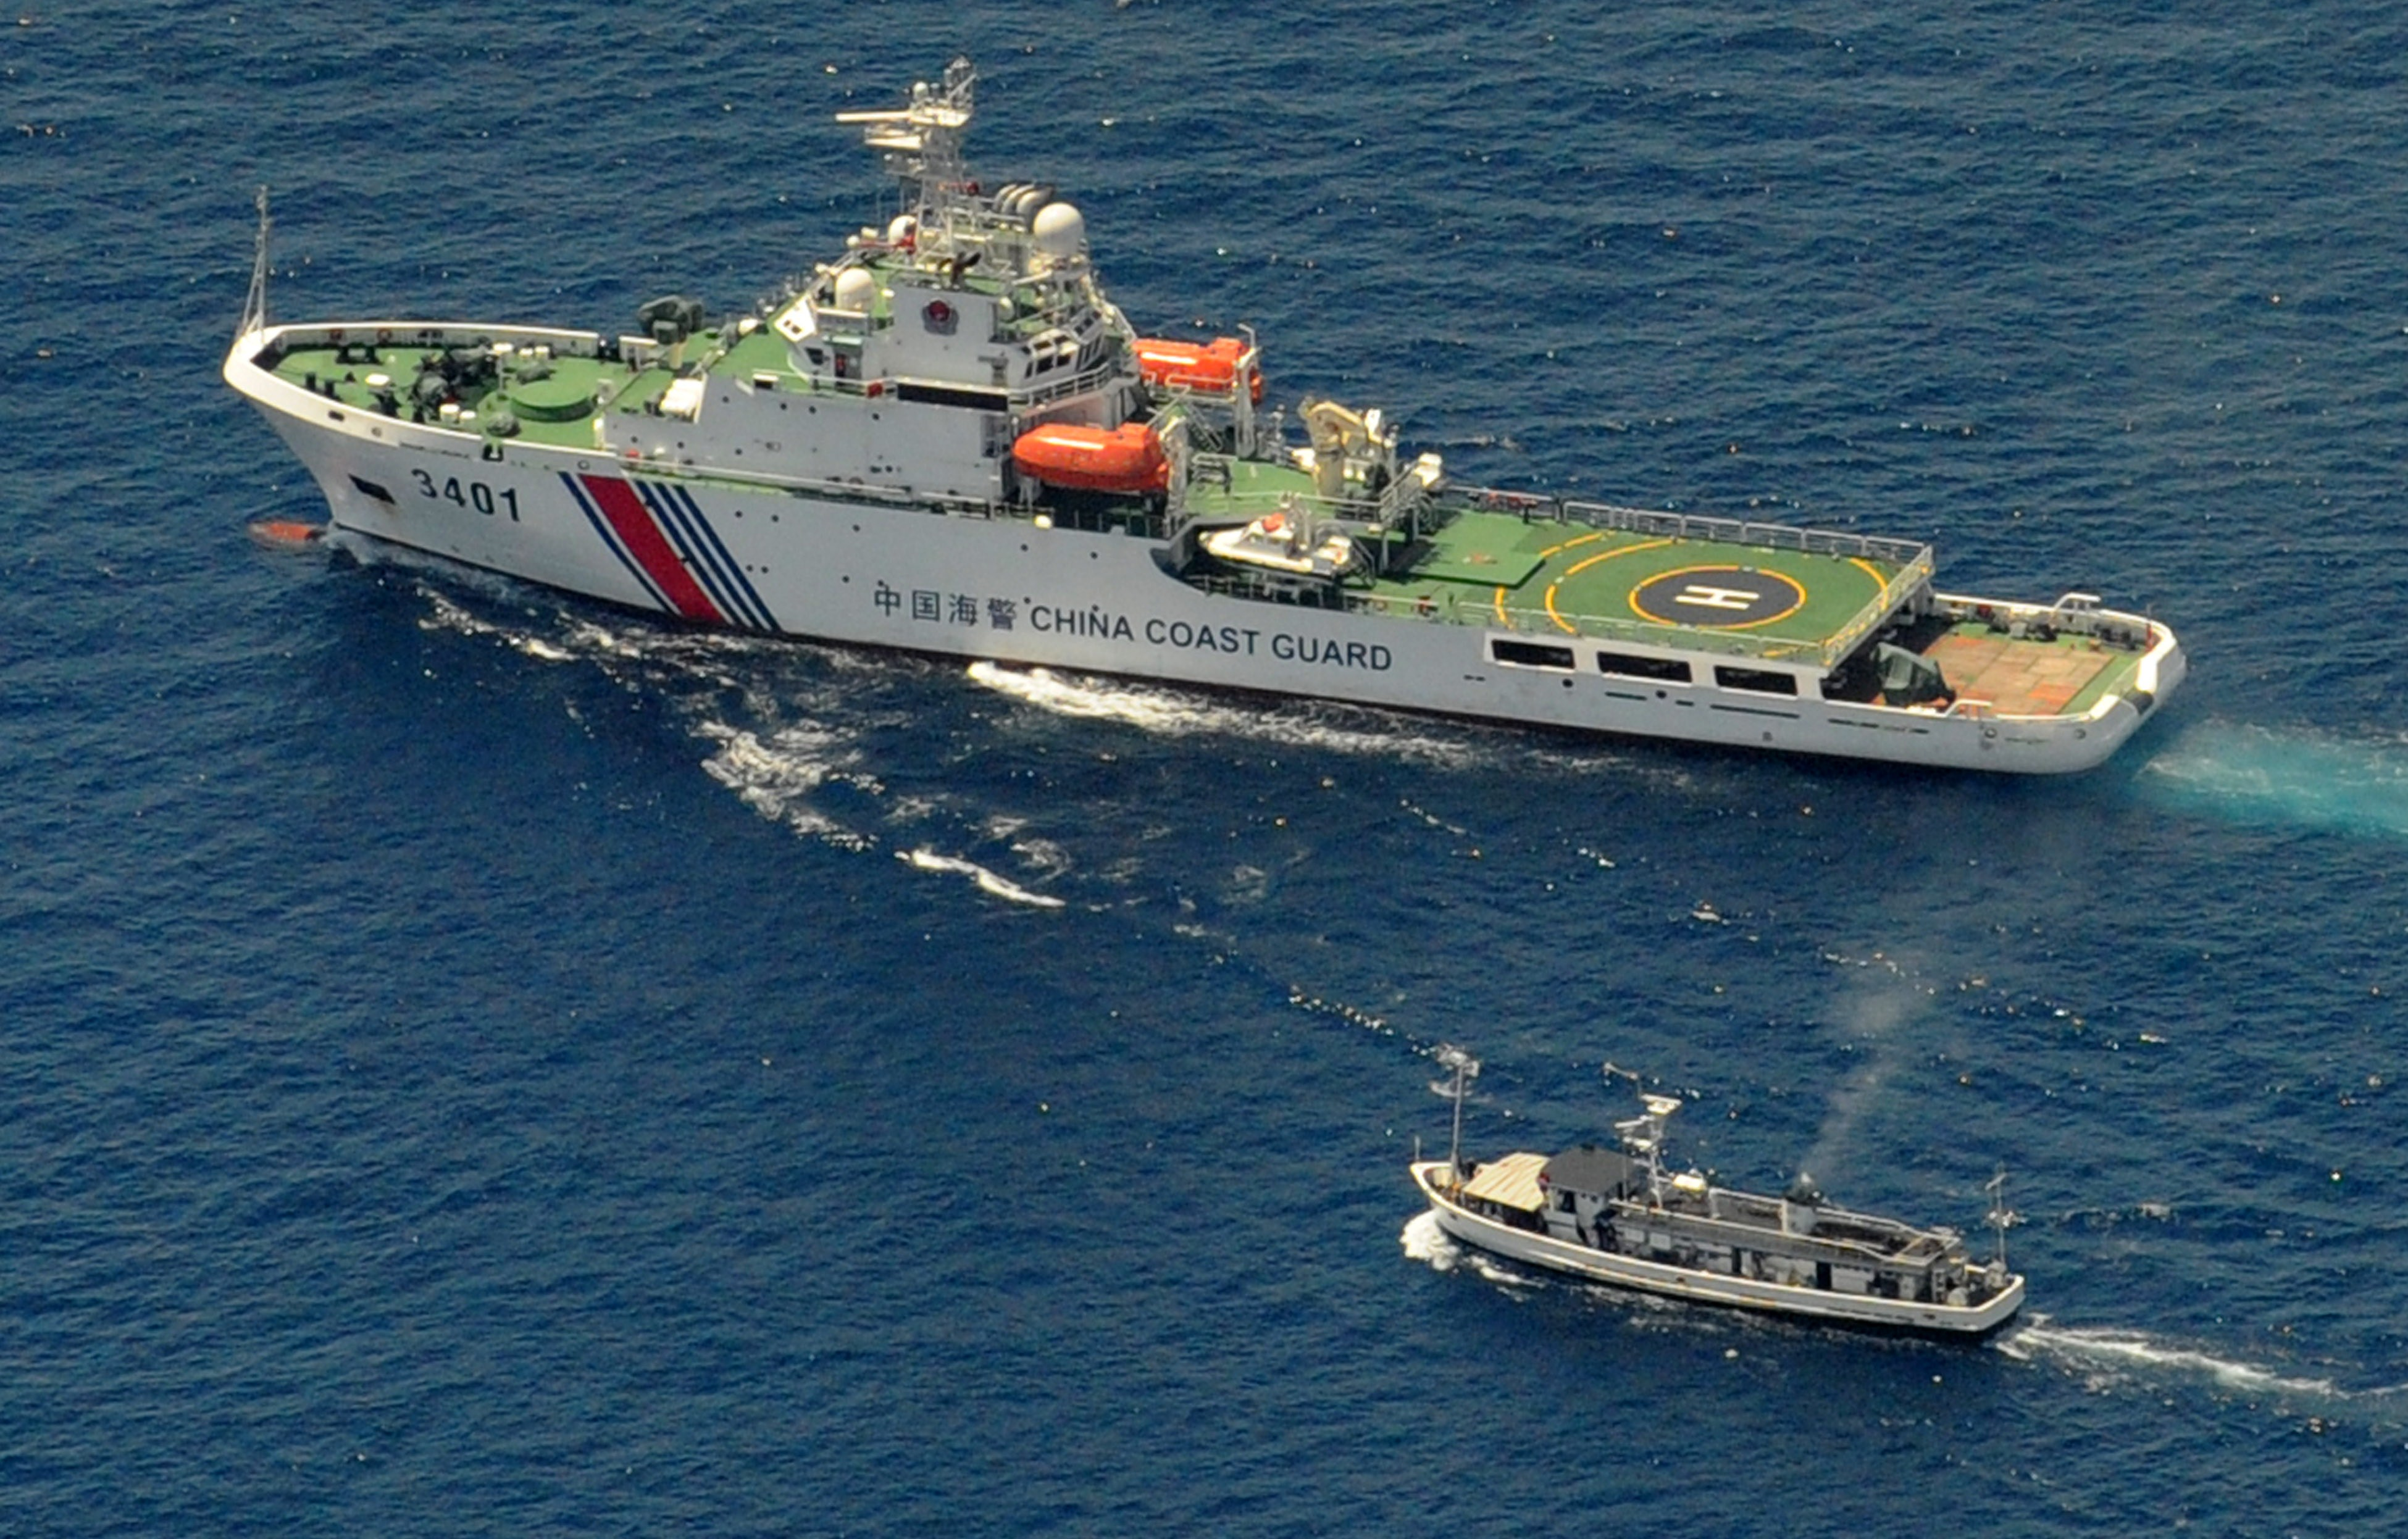 A China Coast Guard ship and a Philippine supply boat engage in a standoff as the Philippine boat attempts to reach the Second Thomas Shoal, a remote South China Sea reef claimed by both countries, on March 29, 2014